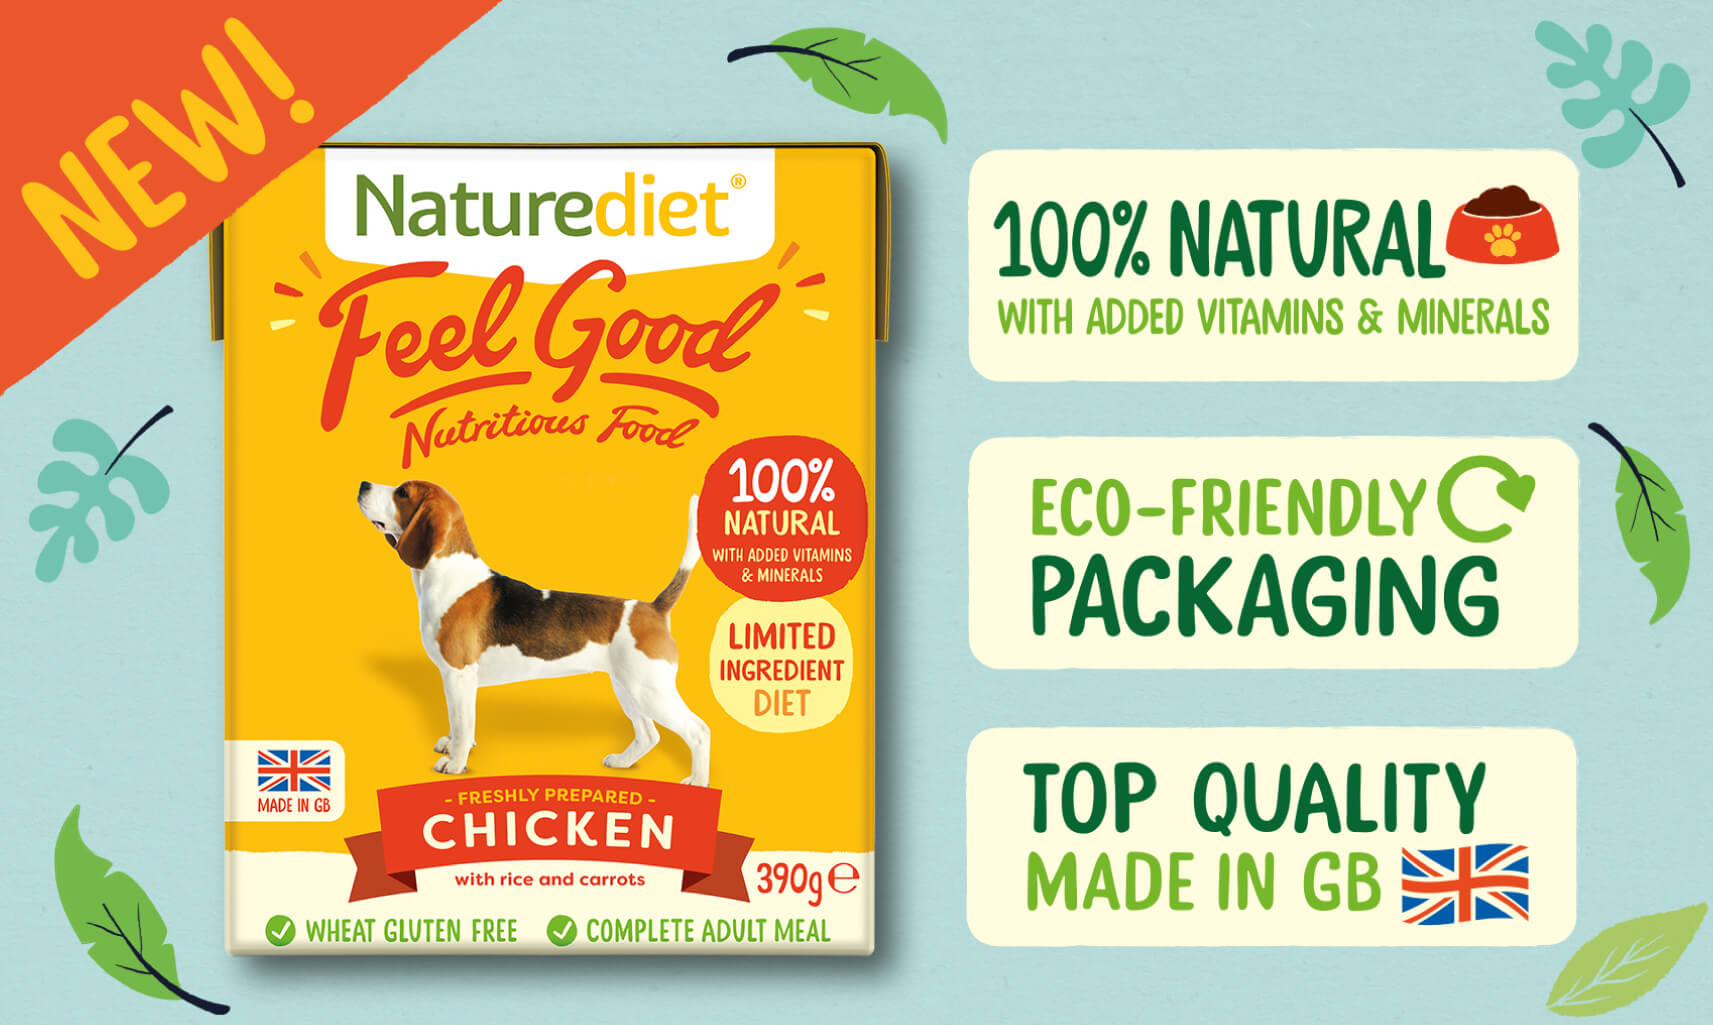 NEW Naturediet Feel Good Nutritious Food. 100% Natural. Eco Friendly. Made in GB.